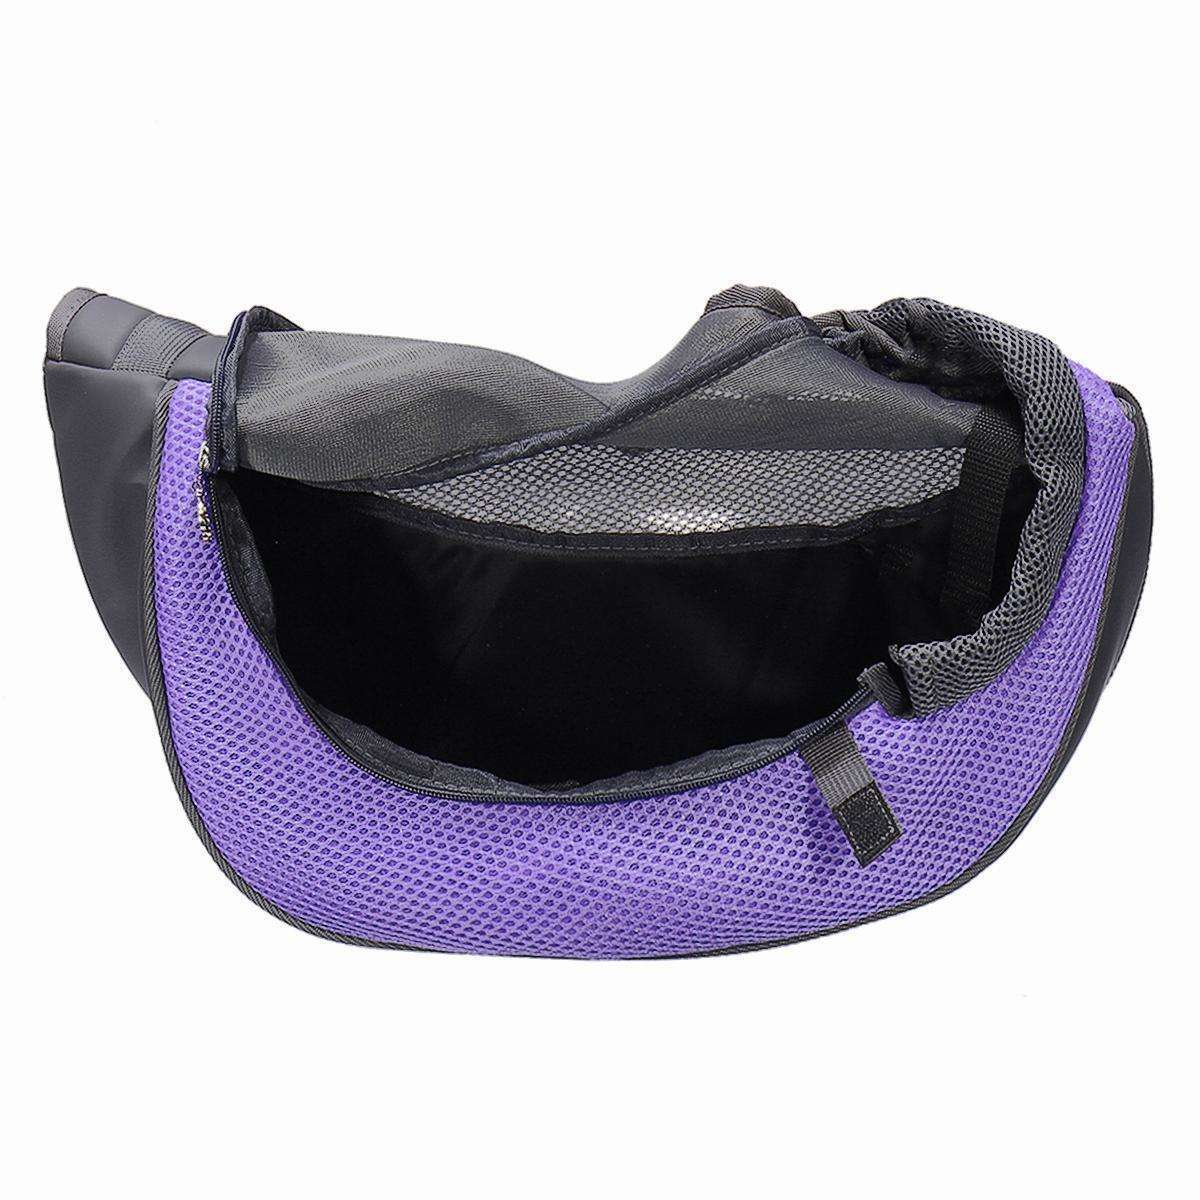 LARNELEC :Dog Puppy Cat Portable Breathable Hiking Travel Pet Carrier Bag,L,Pet Carrier Bag